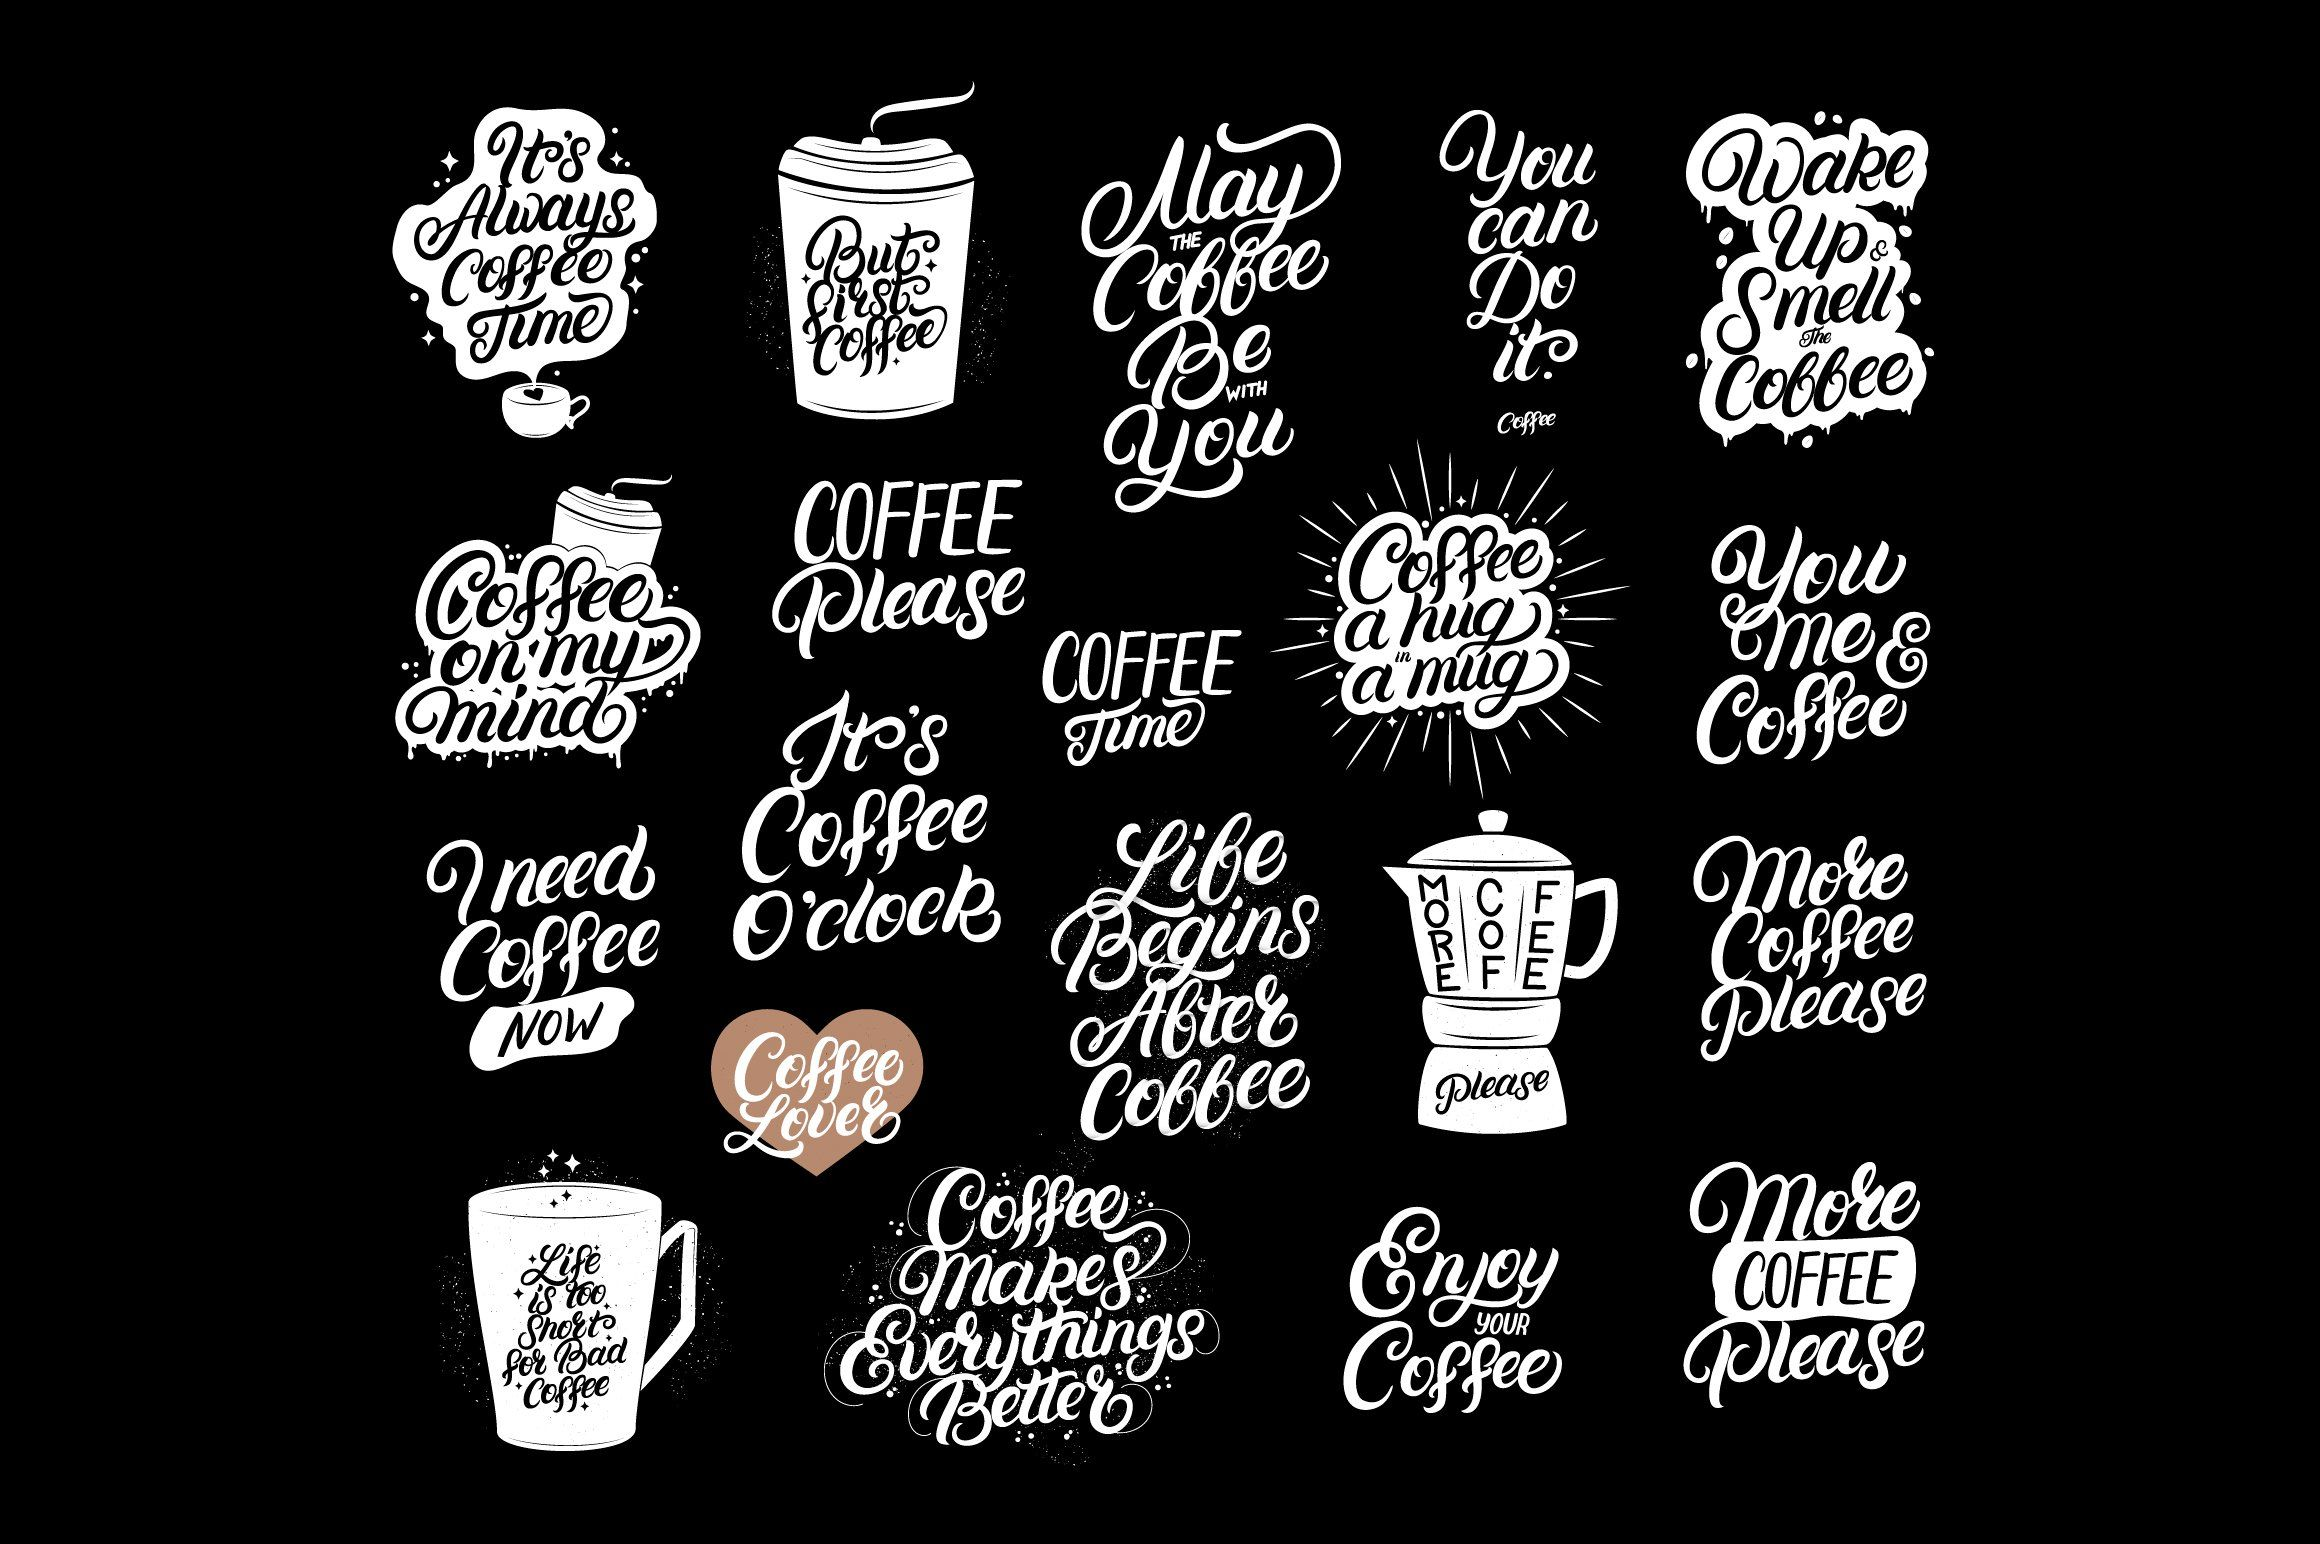 20 Coffee Quotes , sponsored, loversphrasescardstee